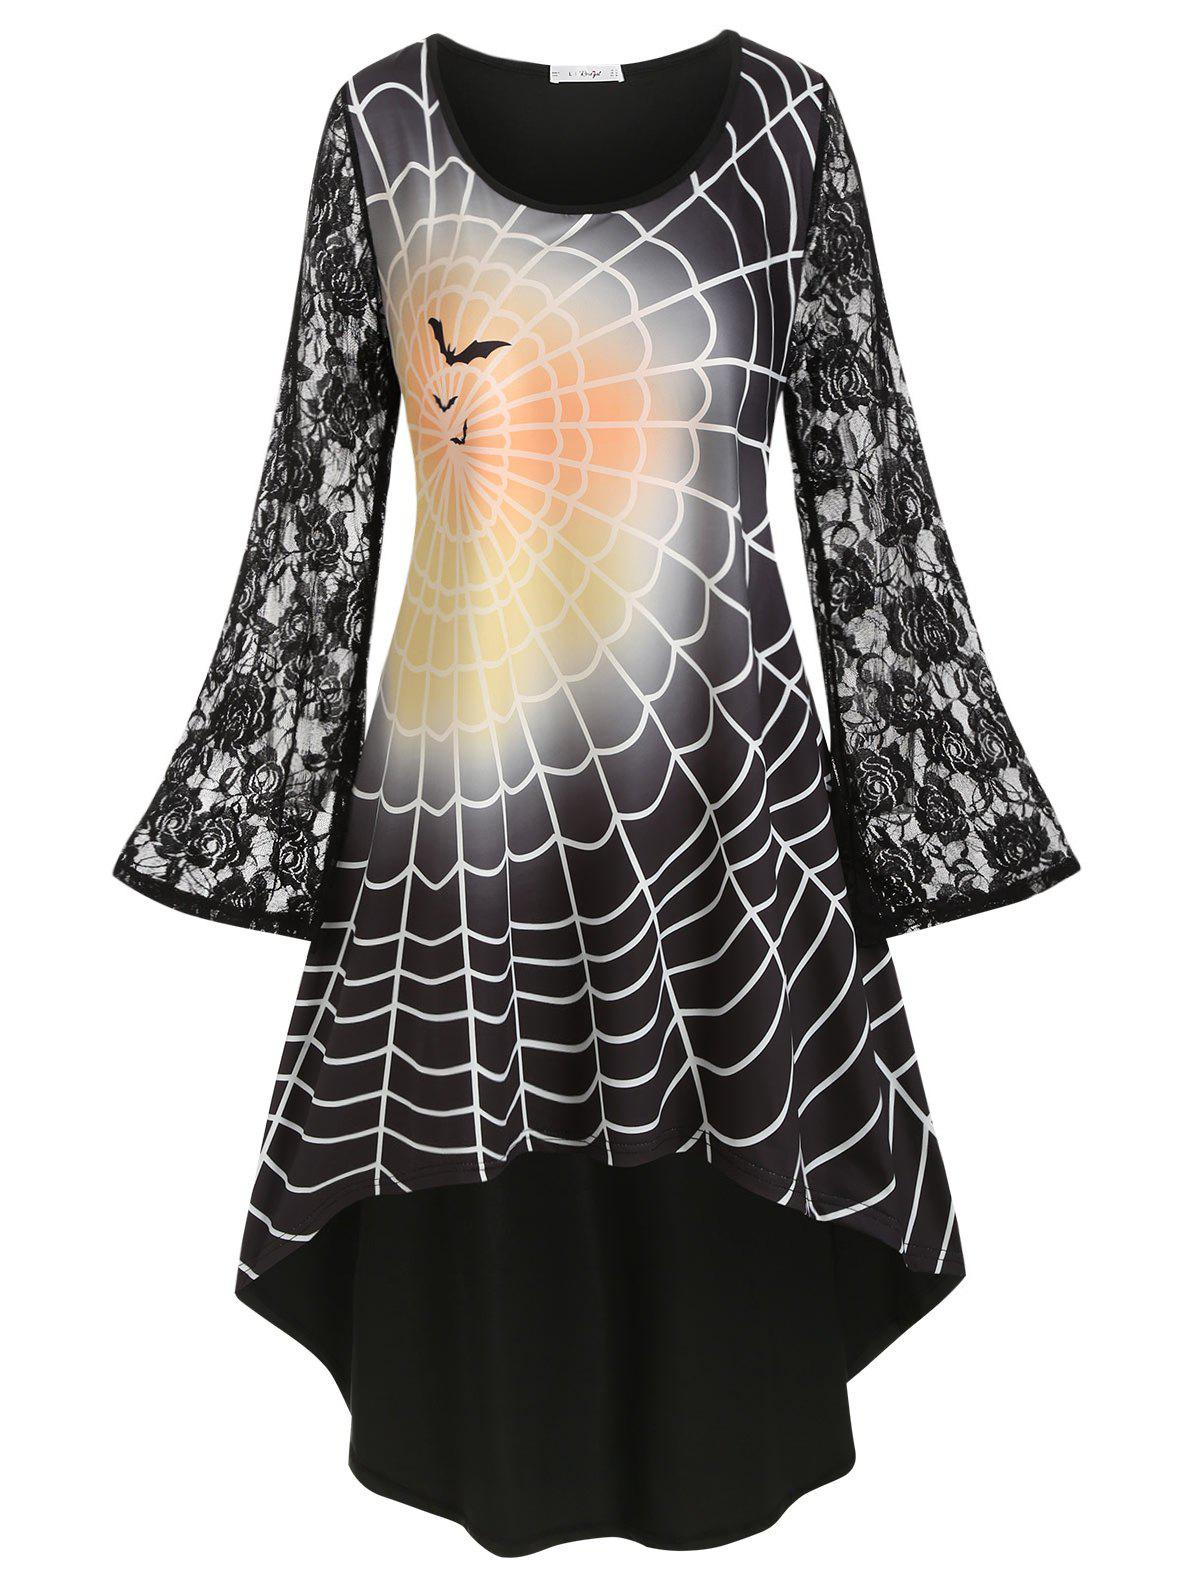 Online Plus Size Spider Web Print High Low Halloween Dress